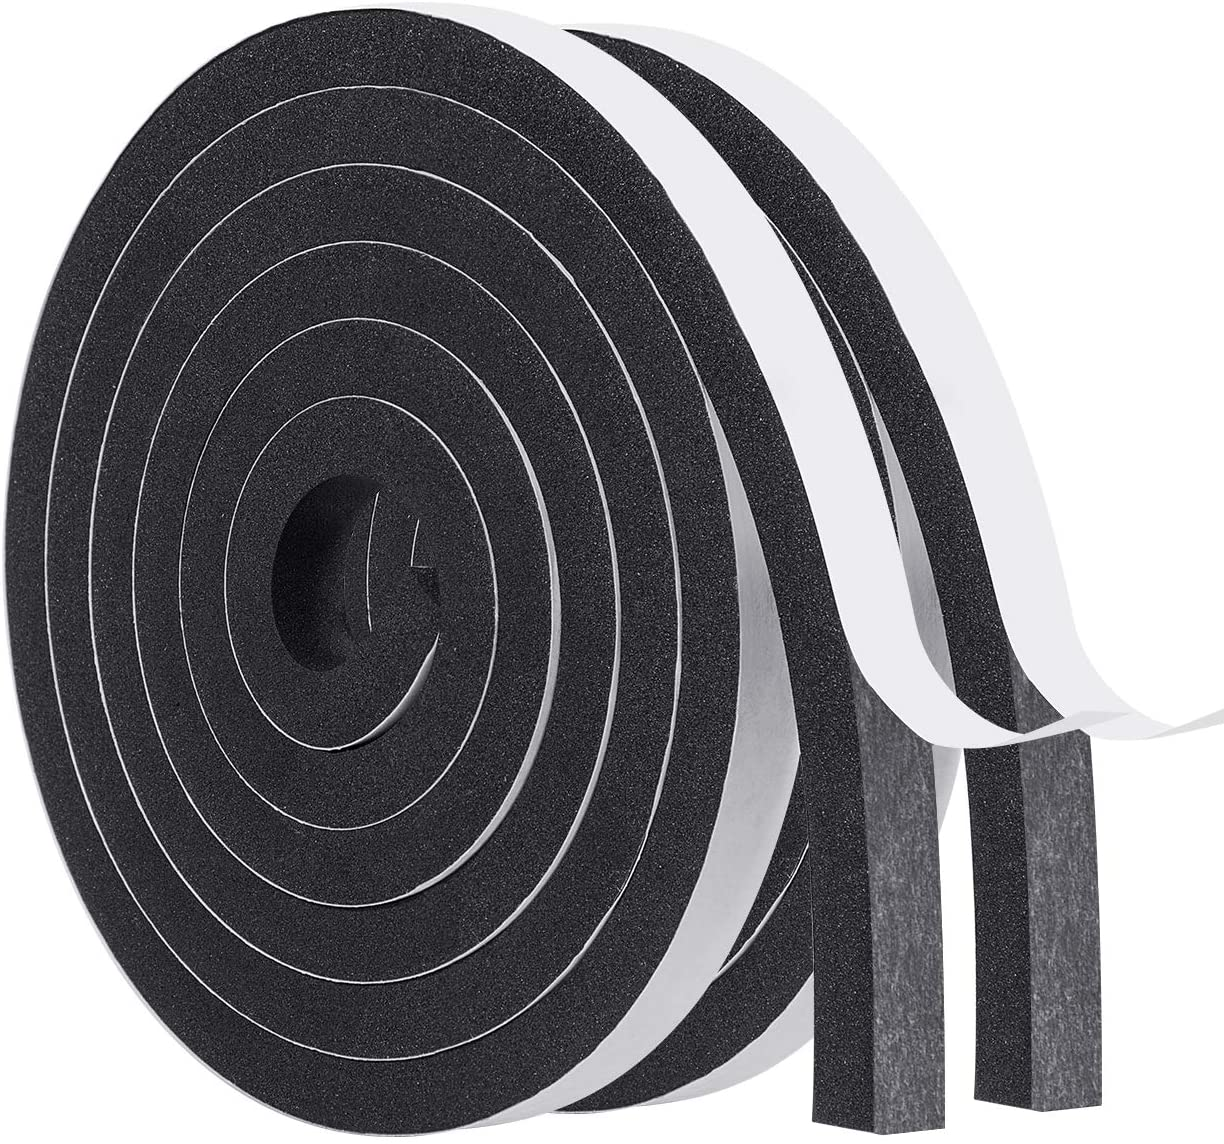 High Density Foam Tape-2 Rolls, 1/2 Inch Wide X 3/8 Inch Thick Self Adhesive Weather Stripping for Doors Insulation Soundproofing Closed Cell Foam Window Seal Total 13 Feet Long(6.5ft x 2 Rolls)